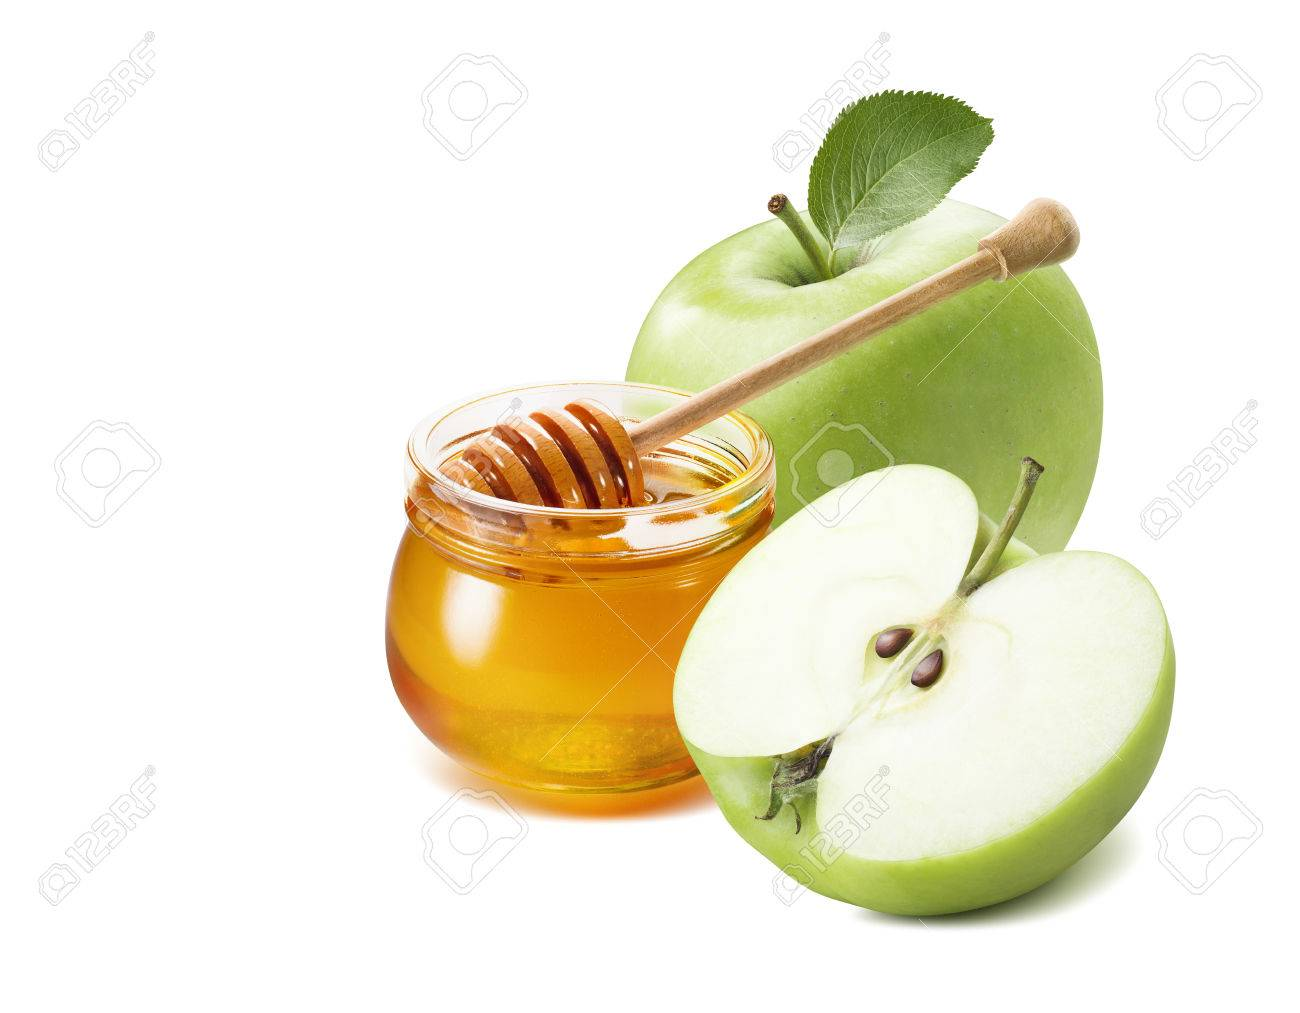 Green apple half and honey jar for Jewish New Year isolated on white background for poster design - 85110517